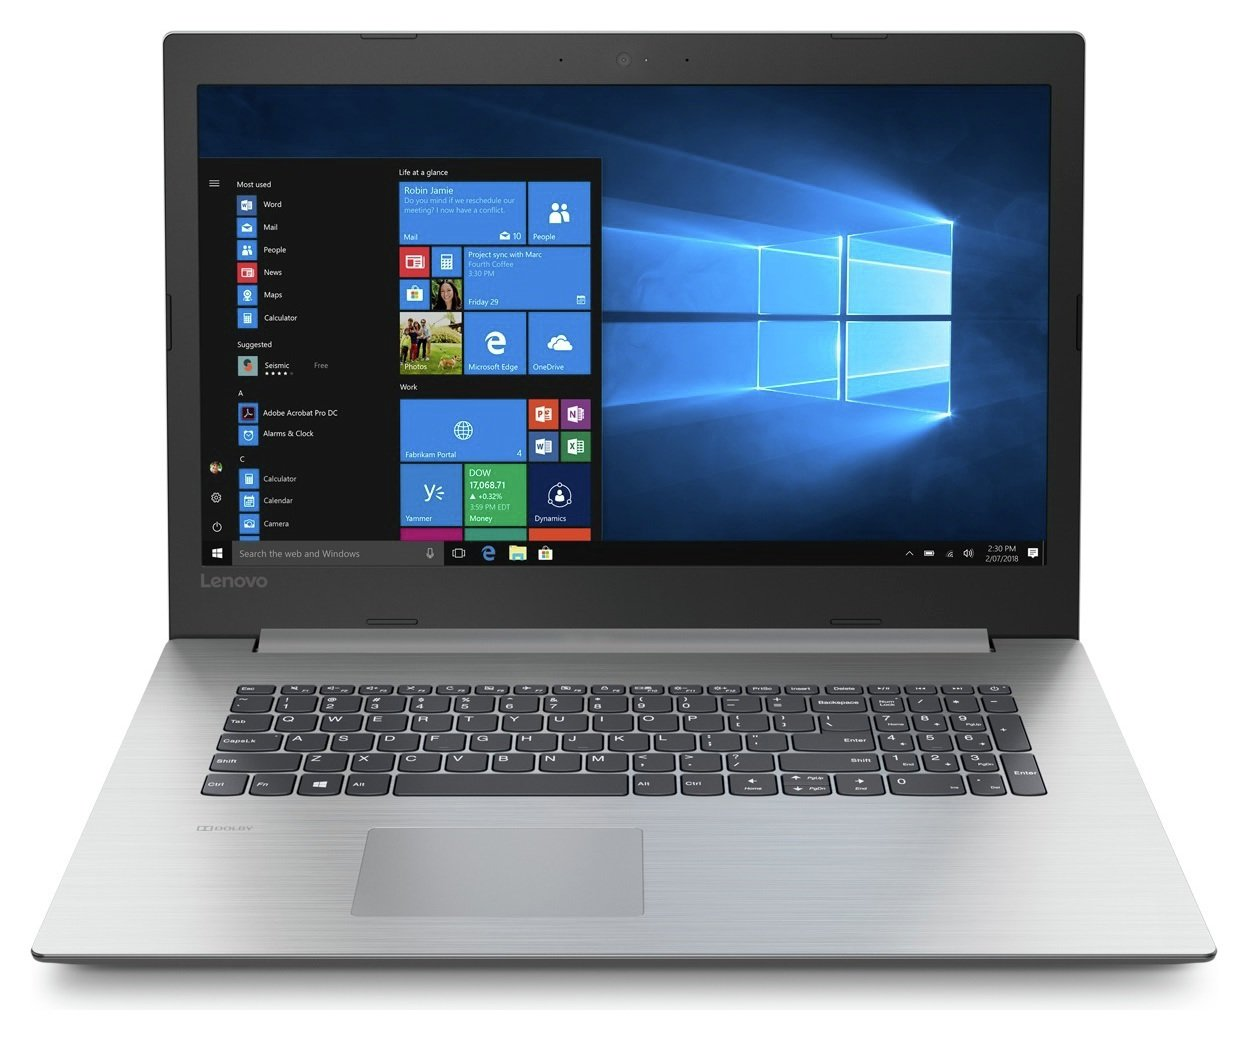 Lenovo IdeaPad 330 15.6 Inch i5 8GB 2TB Laptop - Black from Lenovo